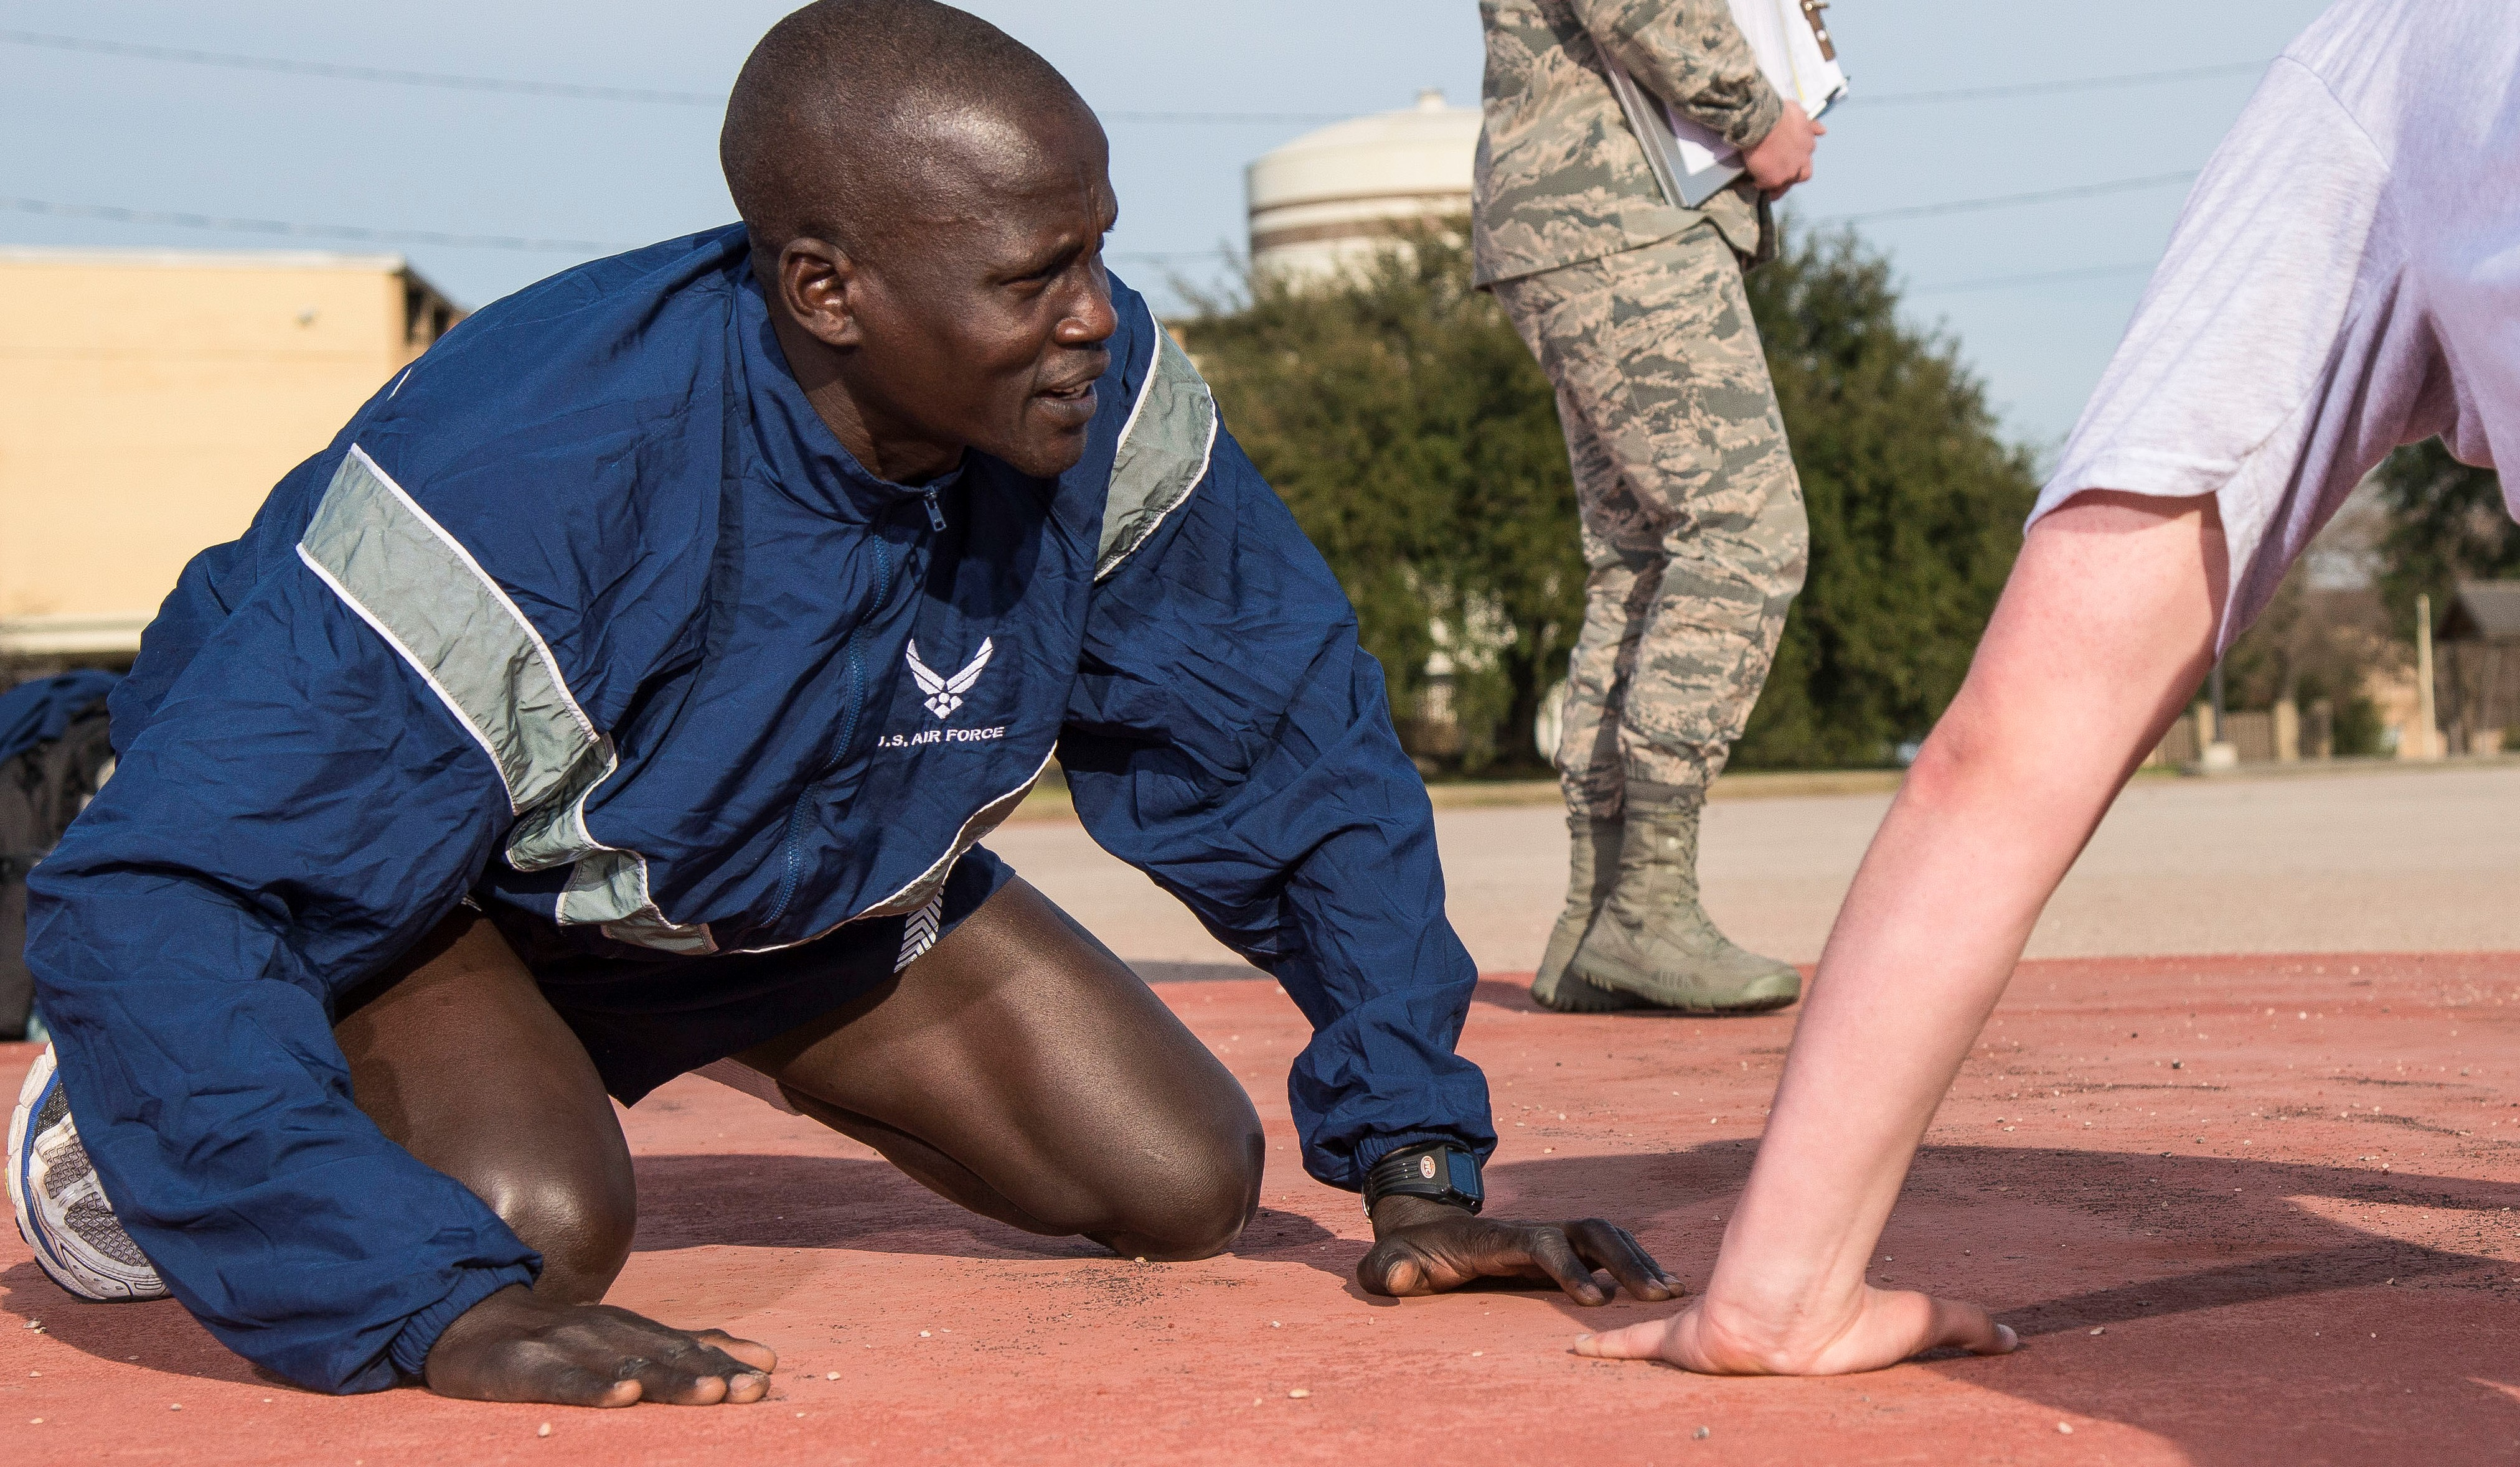 Guor Maker, a trainee at Air Force Basic Military Training, supports a wingman taking a physical fitness test Jan. 30, 2018 at the 324th Training Squadron's physical training pad at Join Base San Antonio-Lackland, Texas. Maker was selected as a physical training leader for his time at BMT, his duties include leading the flight during warm-ups and providing support for struggling trainees.